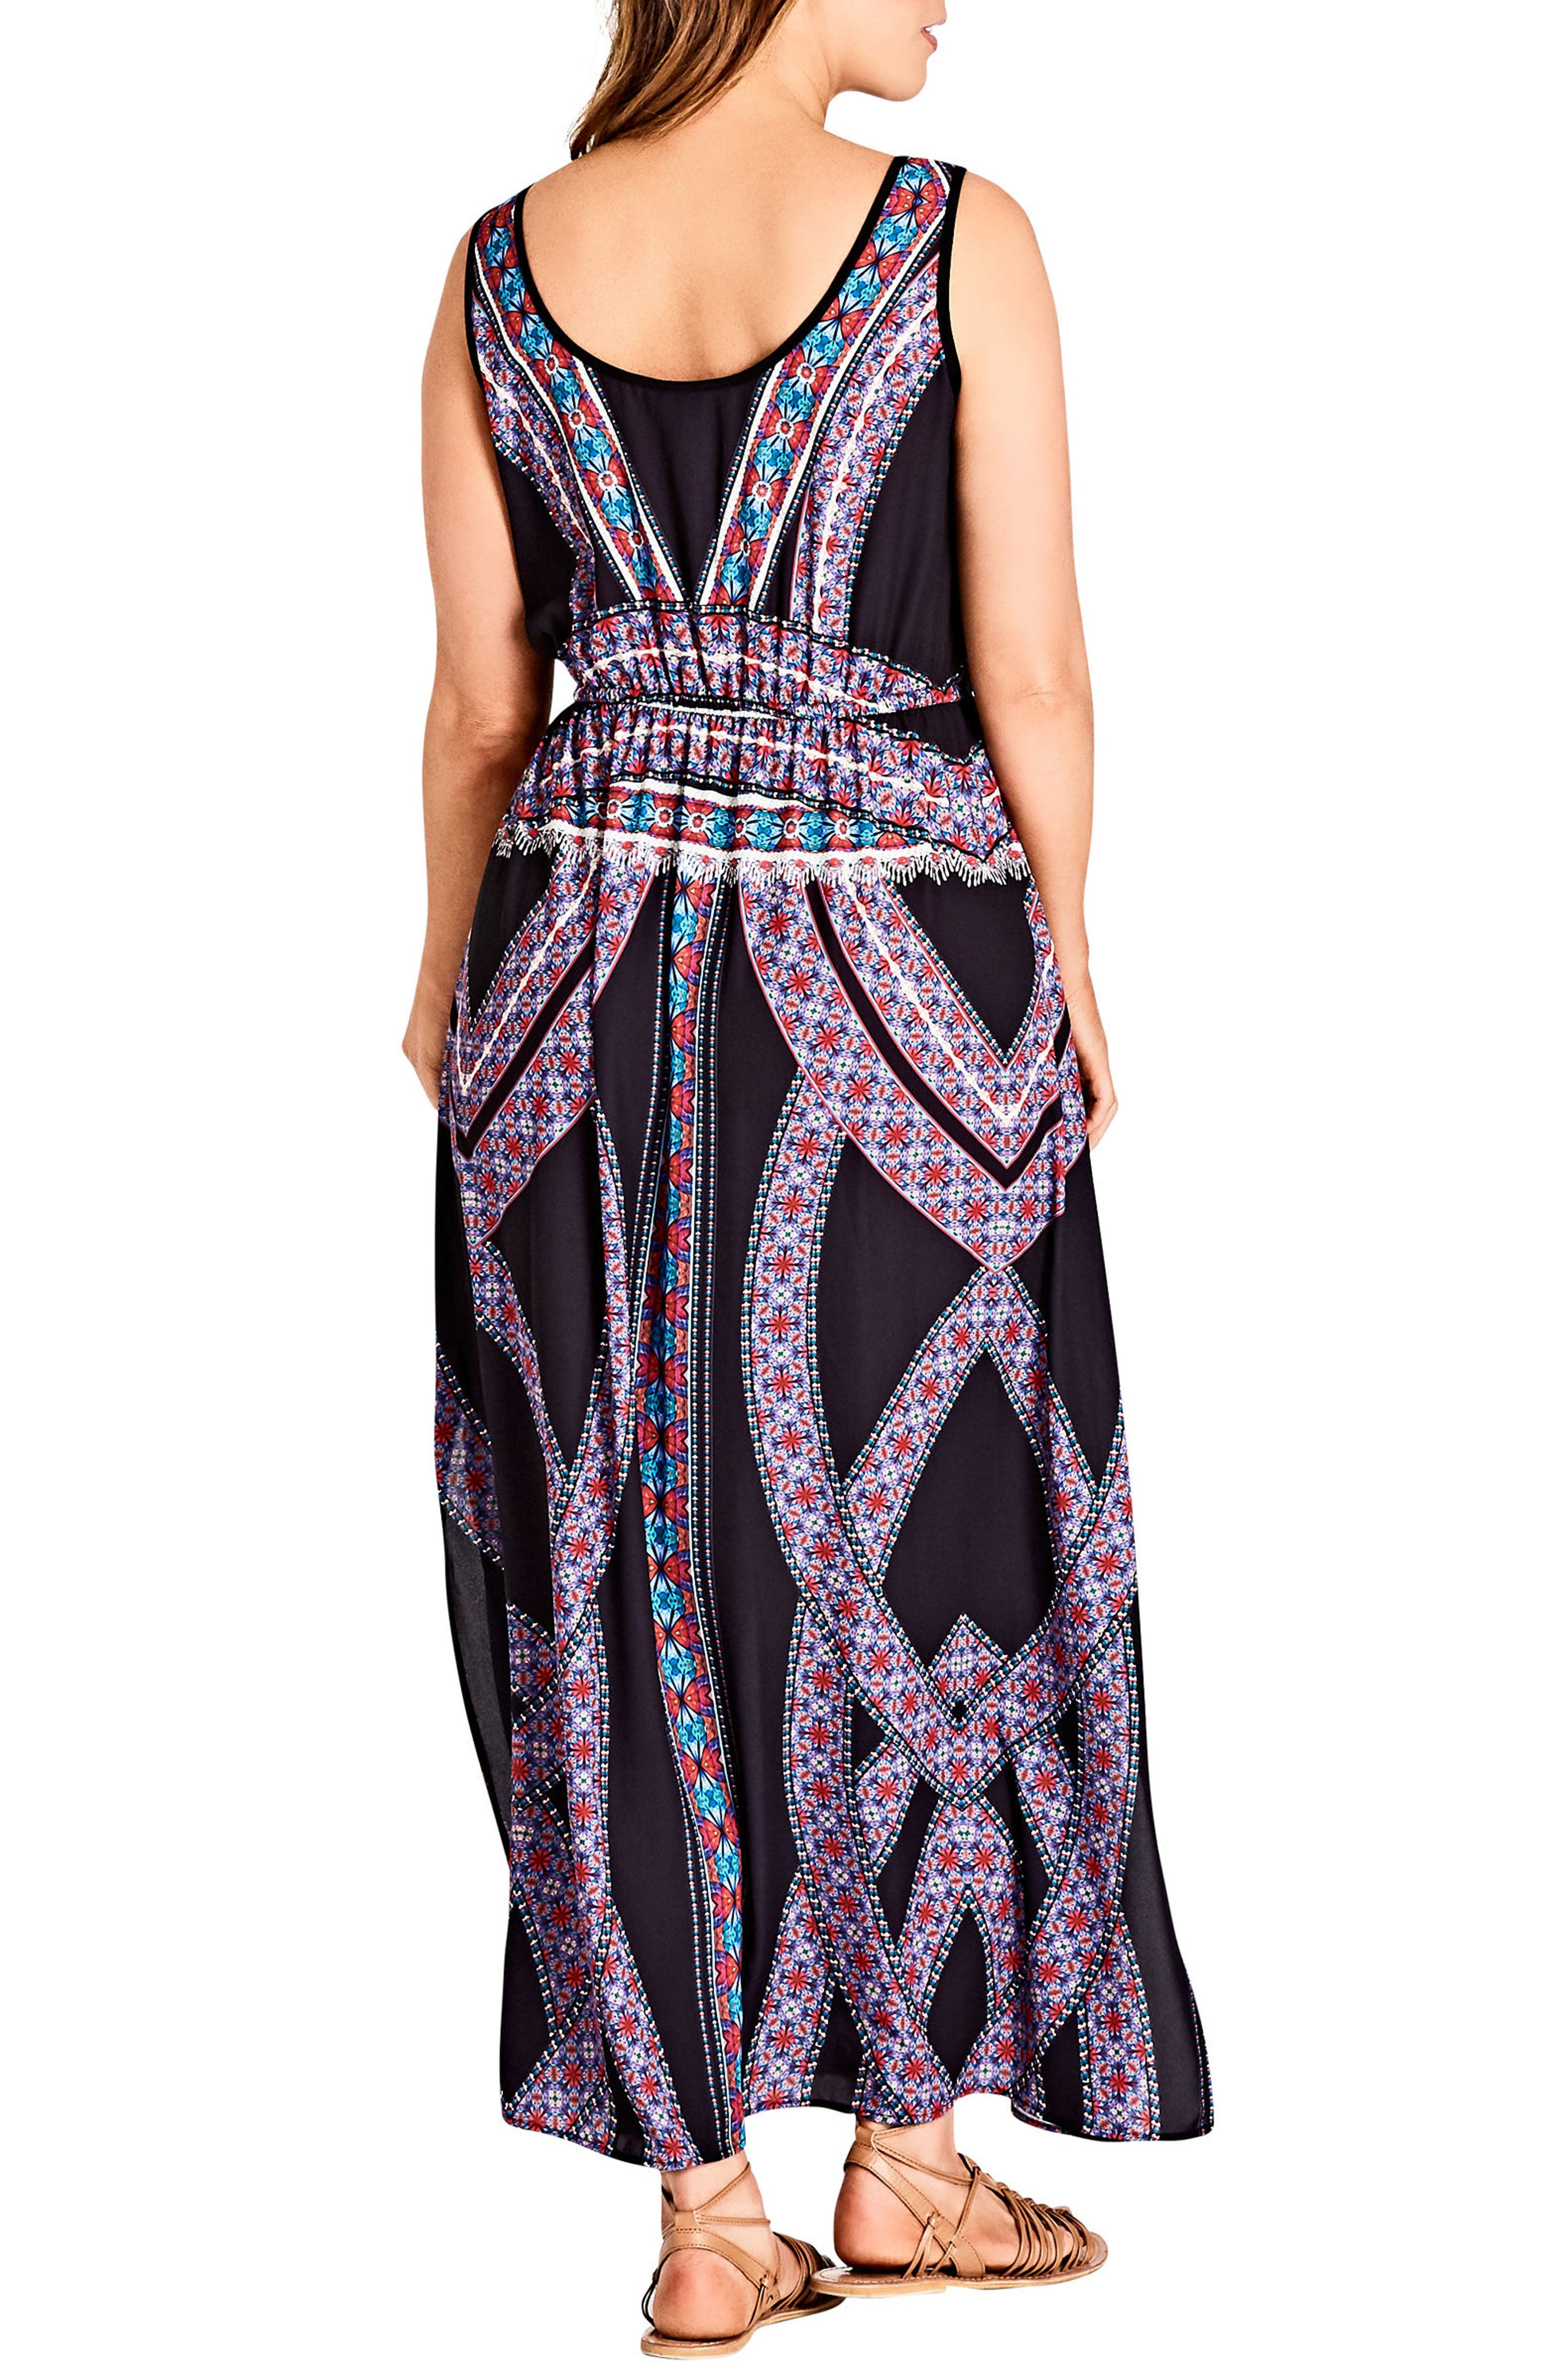 Brasilia Maxi Dress,                             Alternate thumbnail 2, color,                             001